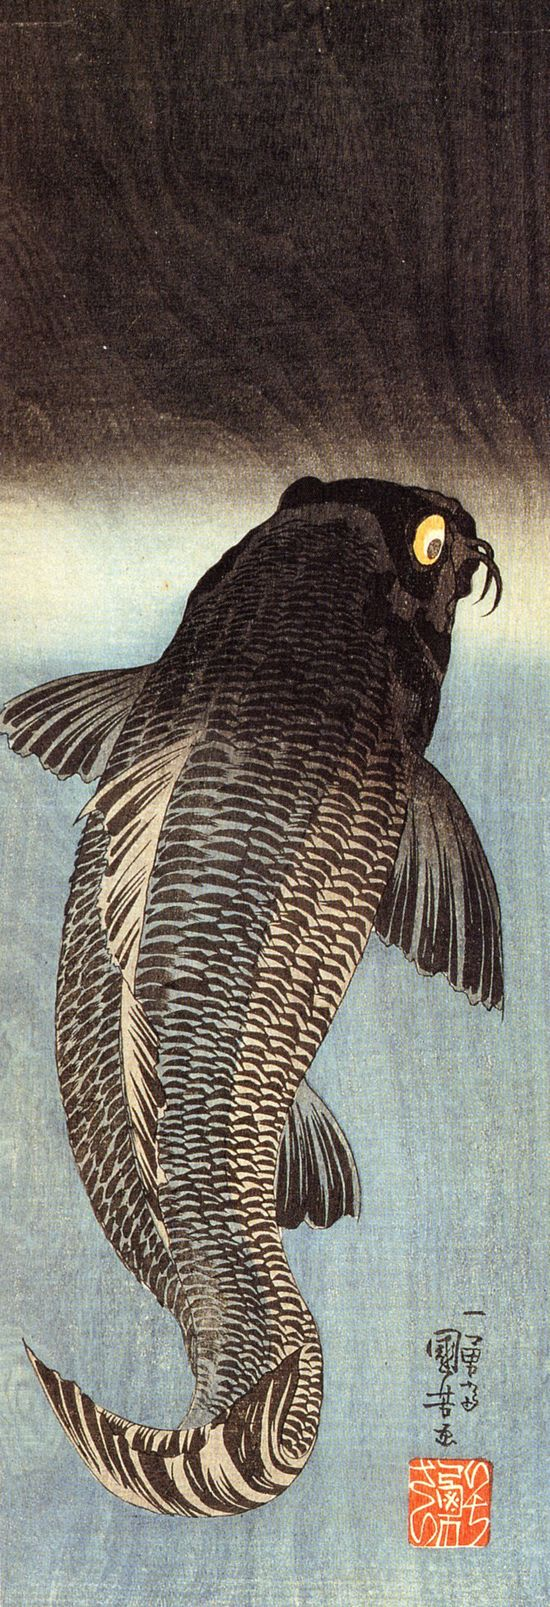 Japanese carp Before long, alas! This body will lie upon earth unheeded and lifeless like a useless log. Dhammapada.  LIBERTY INFINITY